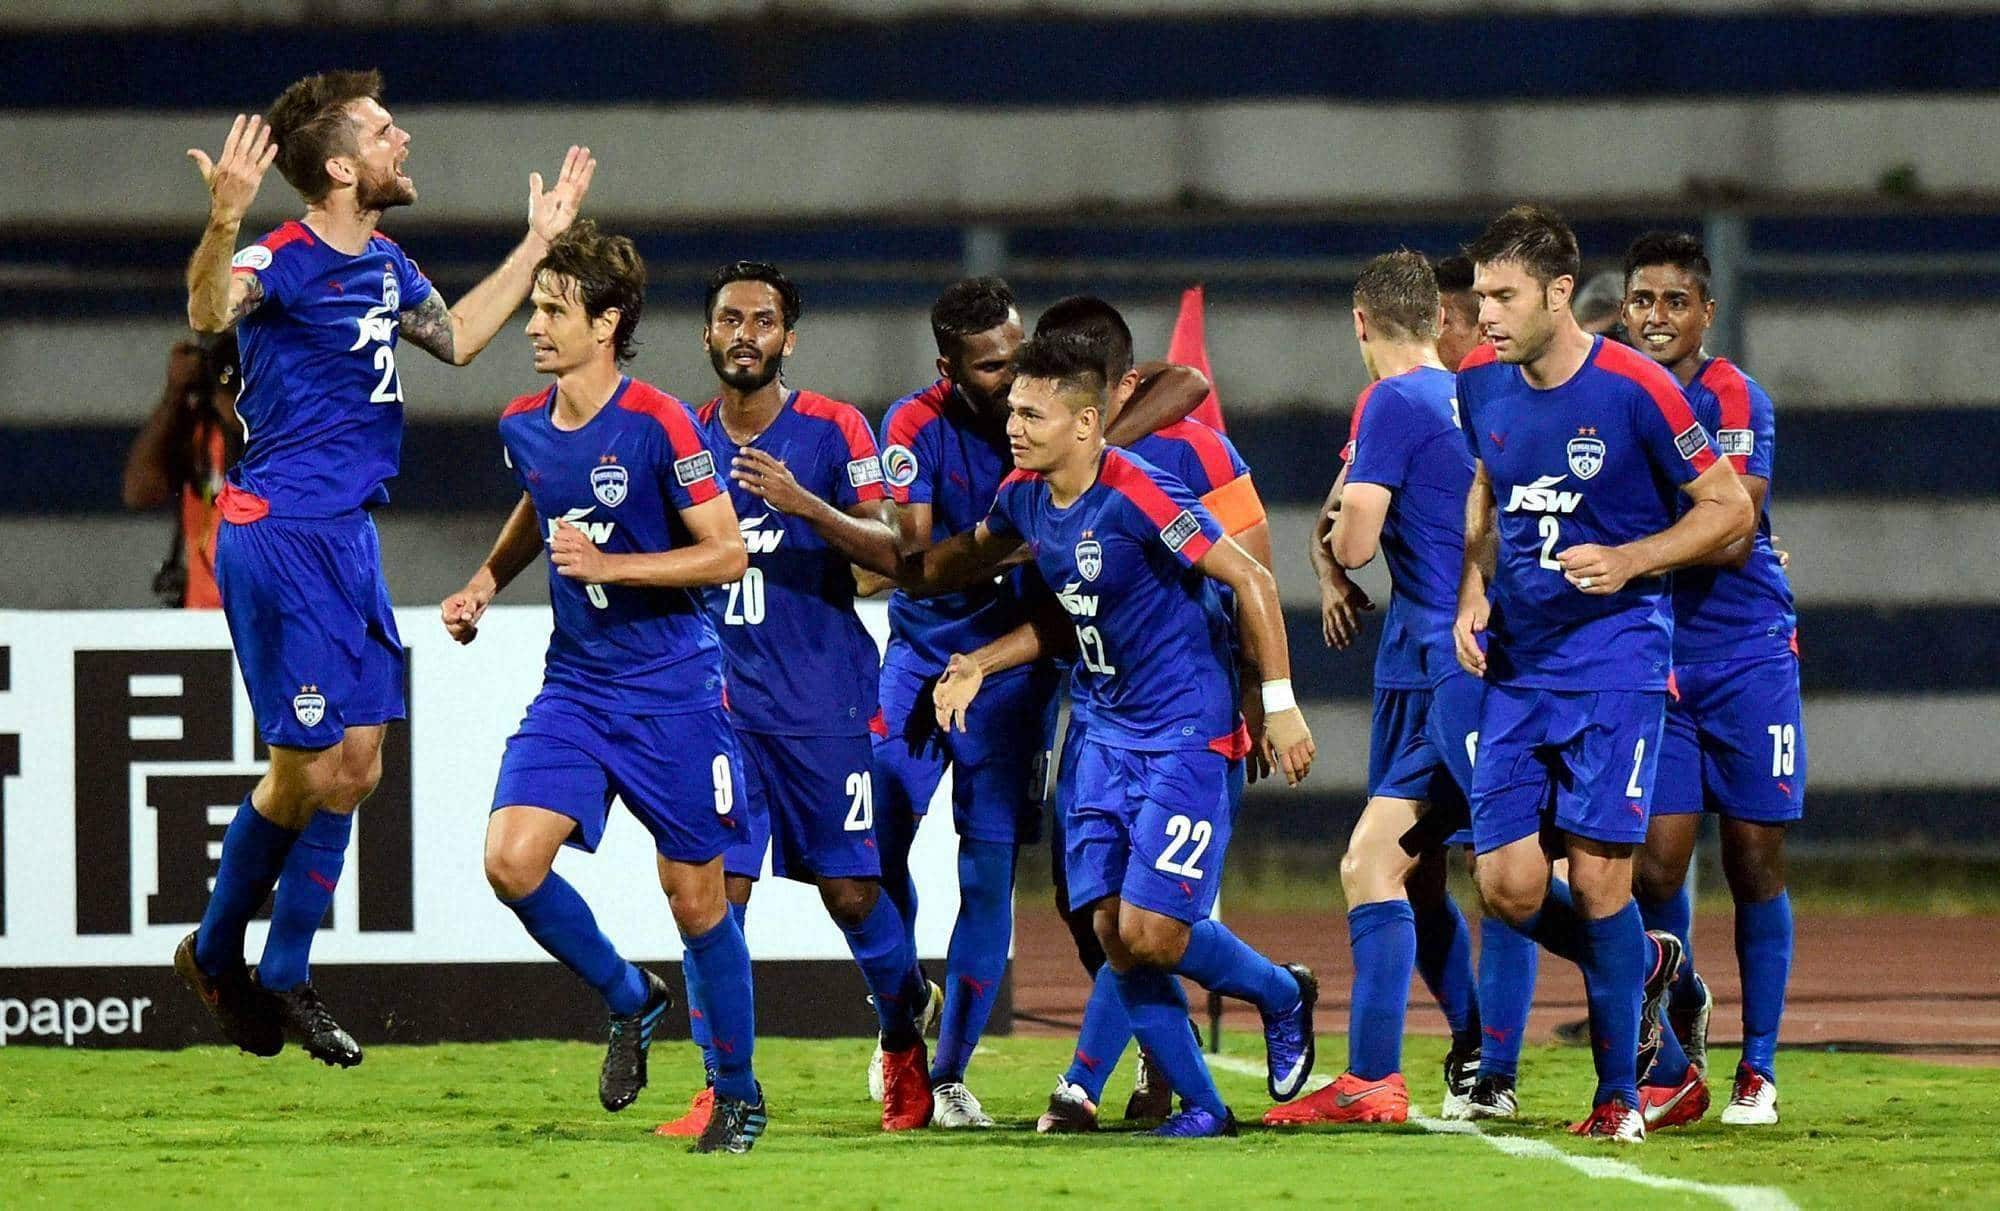 Bengaluru FC vs Mumbai City FC, ISL 2017: Details of Live Streaming And Live Telecast of Match 4 of Indian Super League